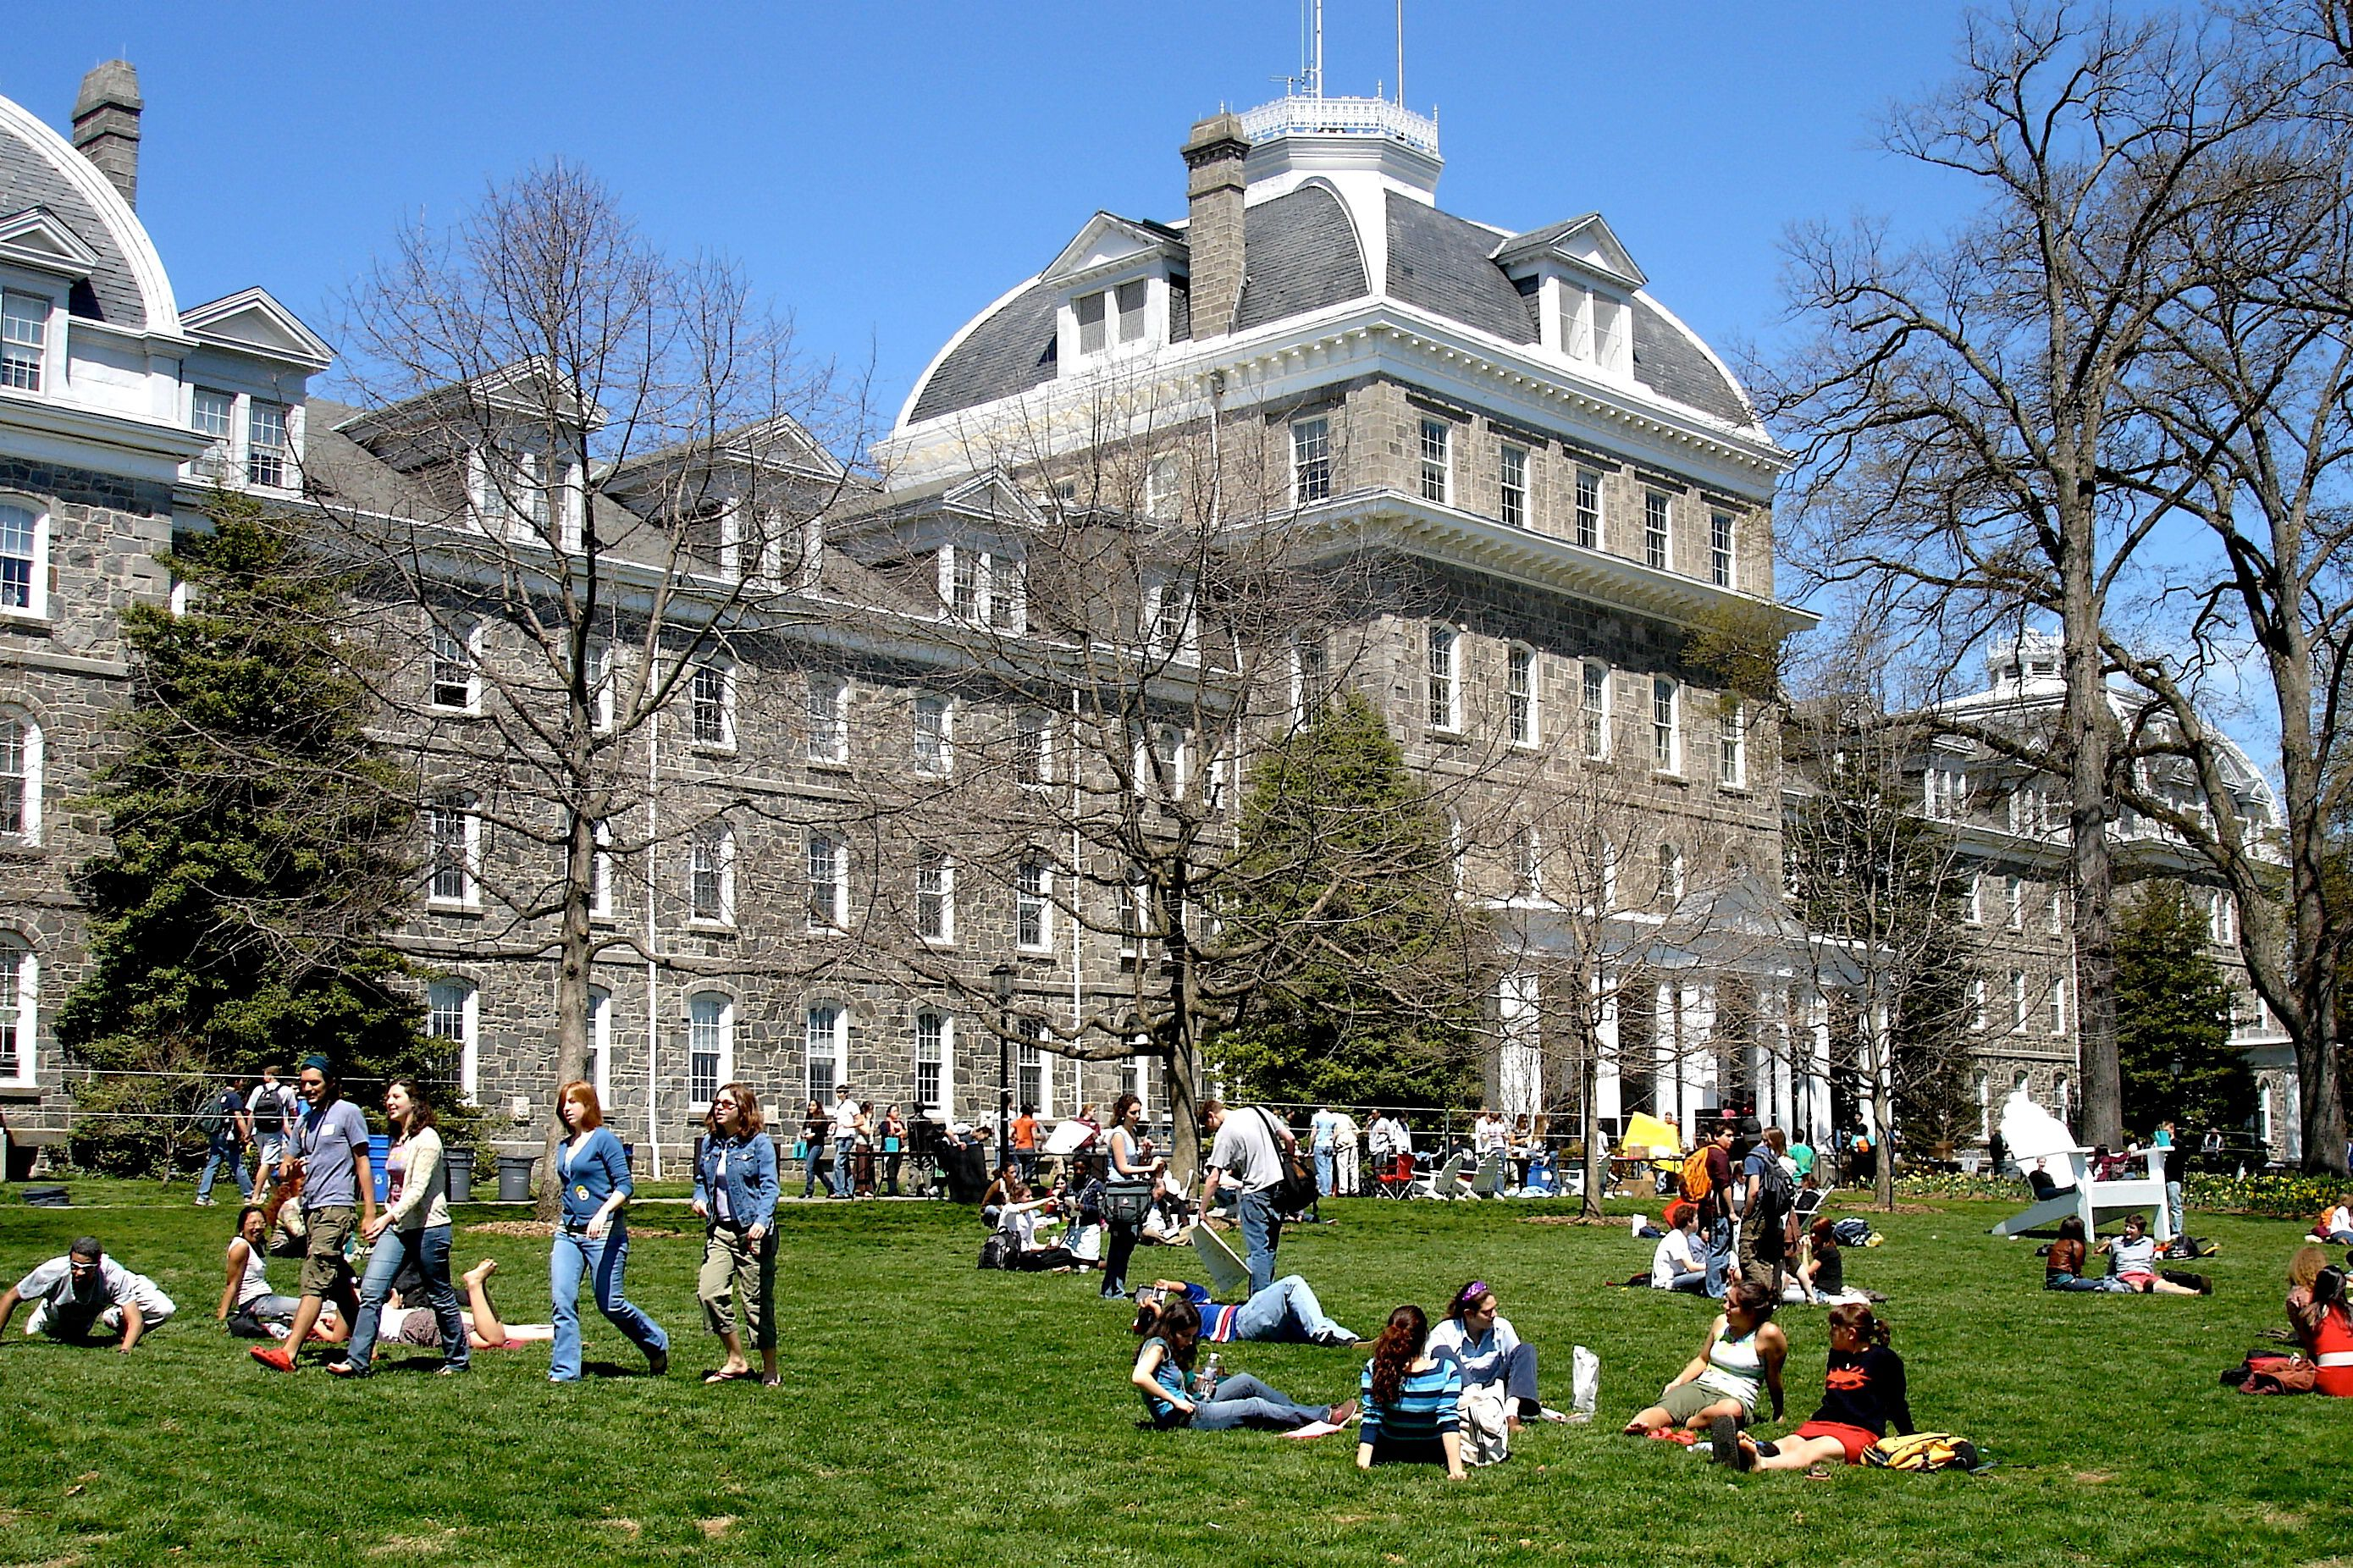 What to Look for in a College: 13 Important Features